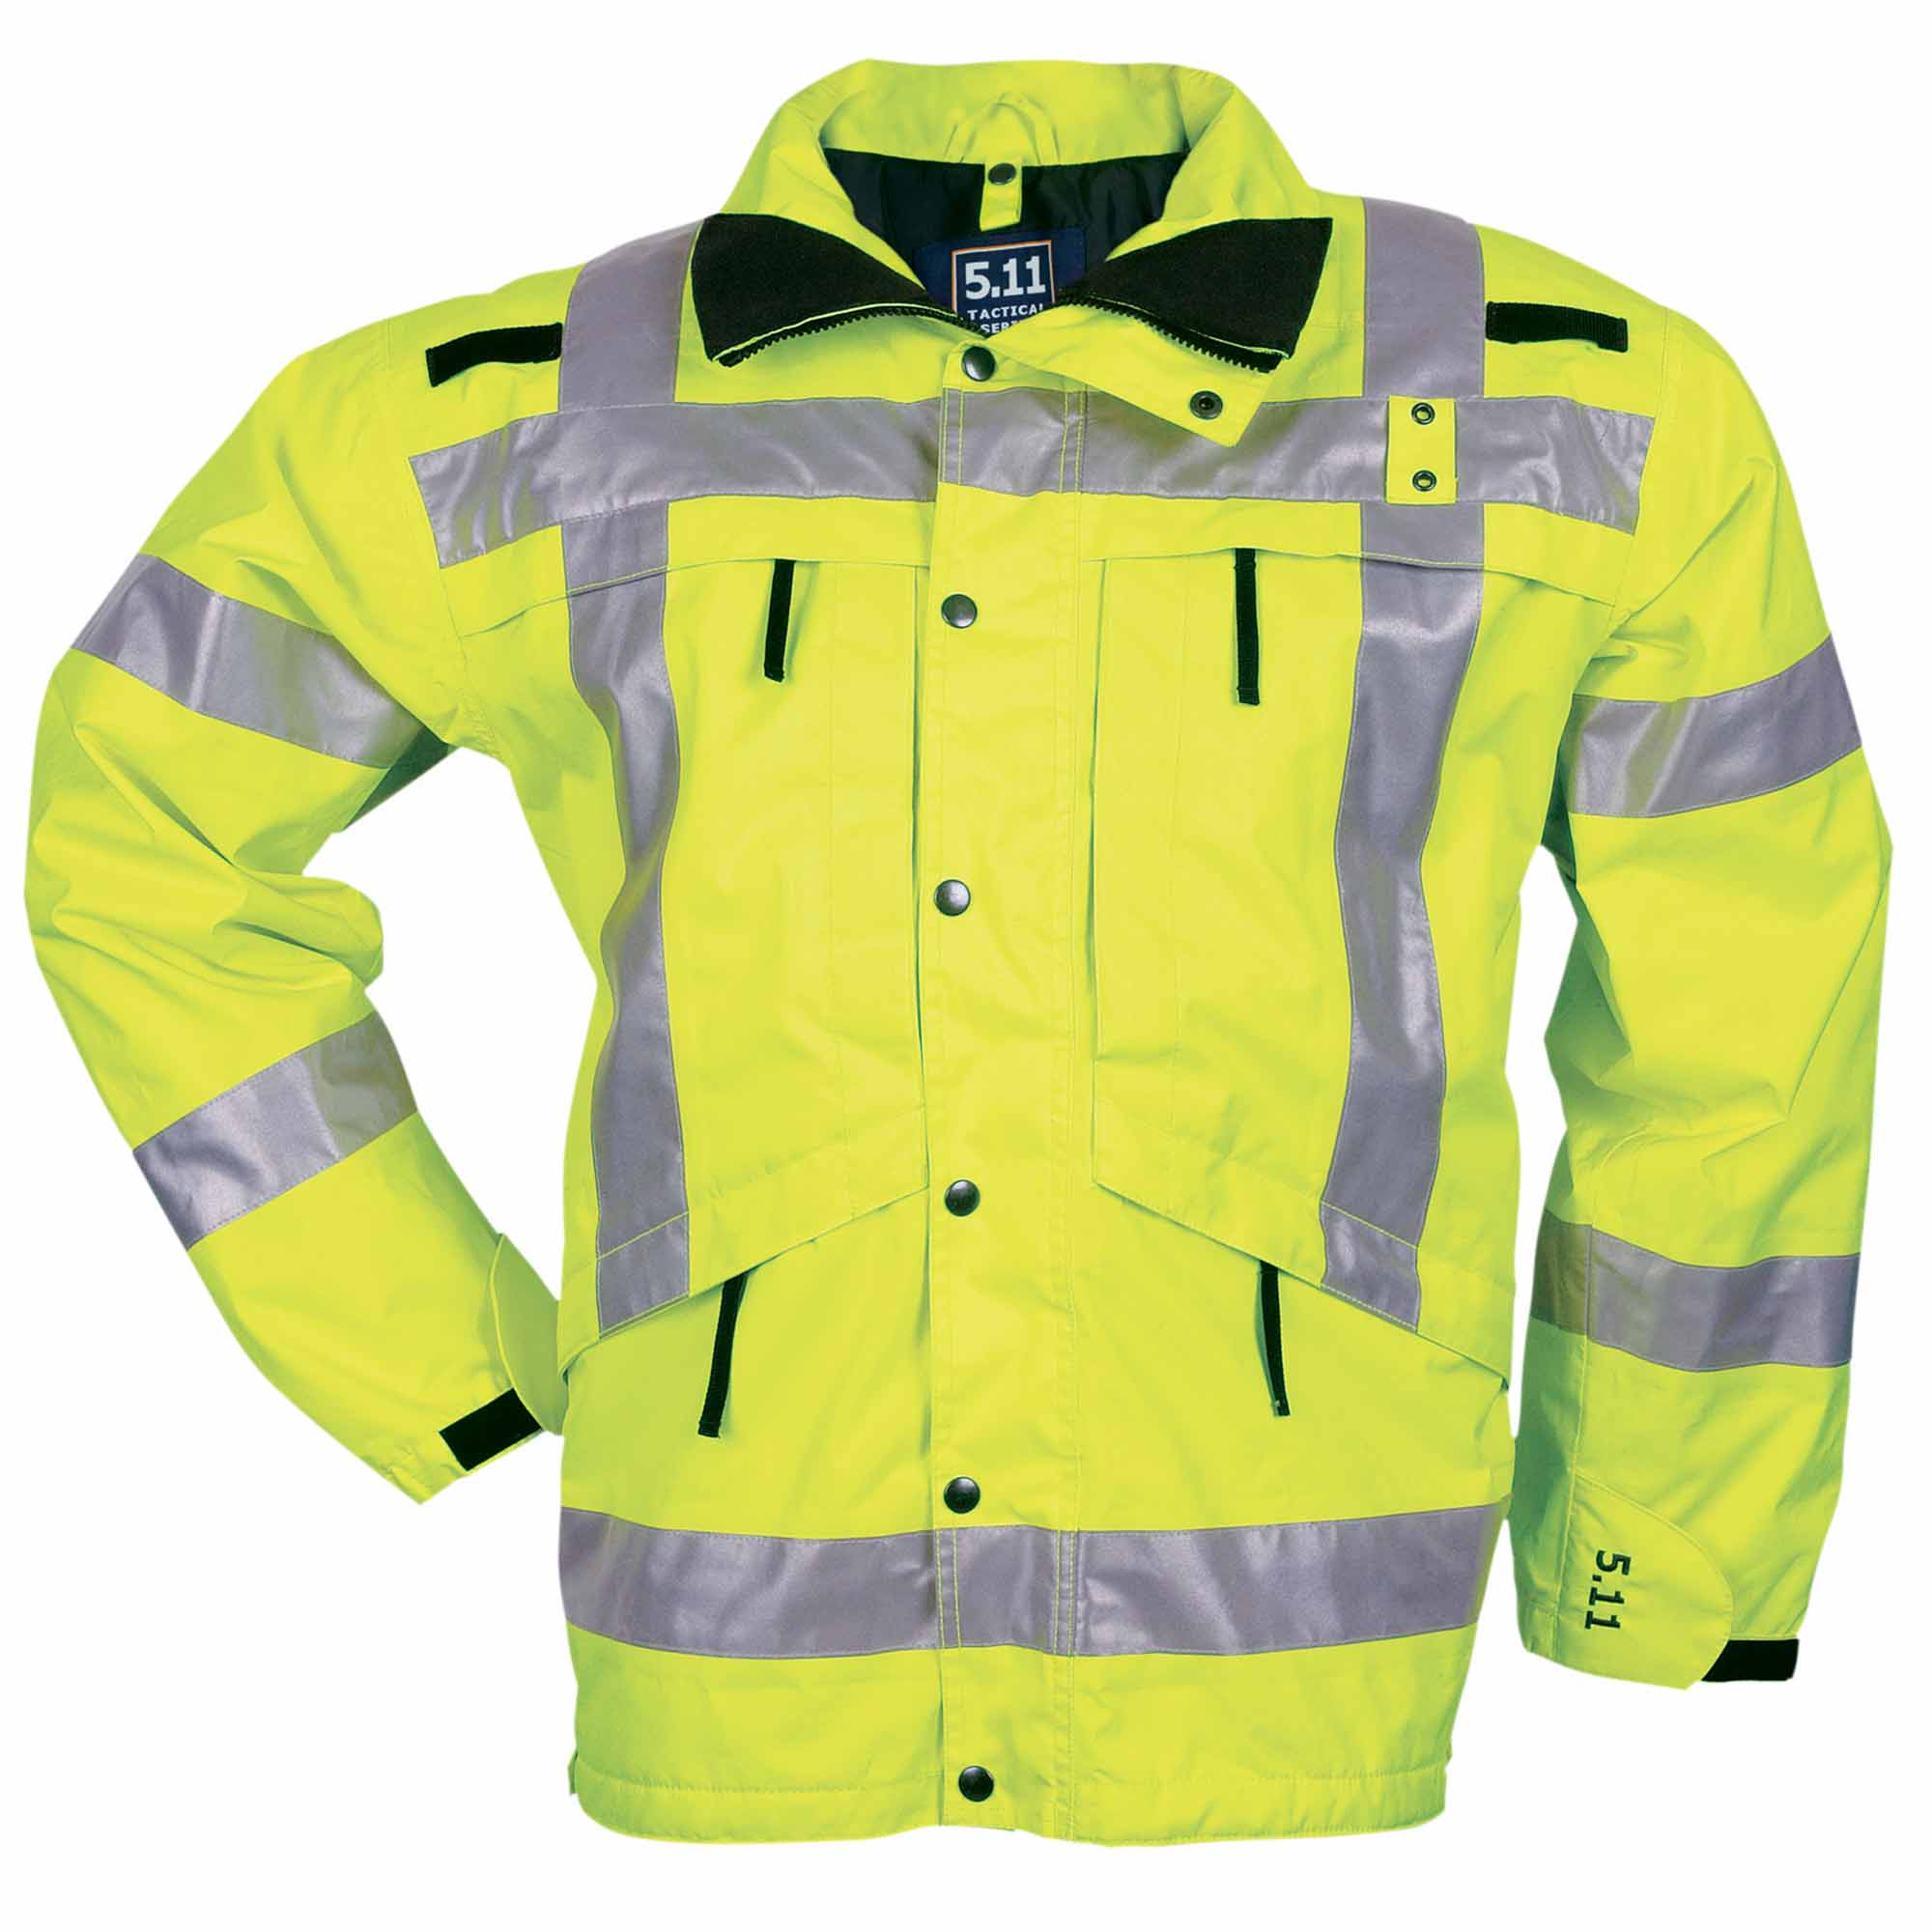 5.11 Tactical Men's High-Visibility Parka Jacket (Yellow)